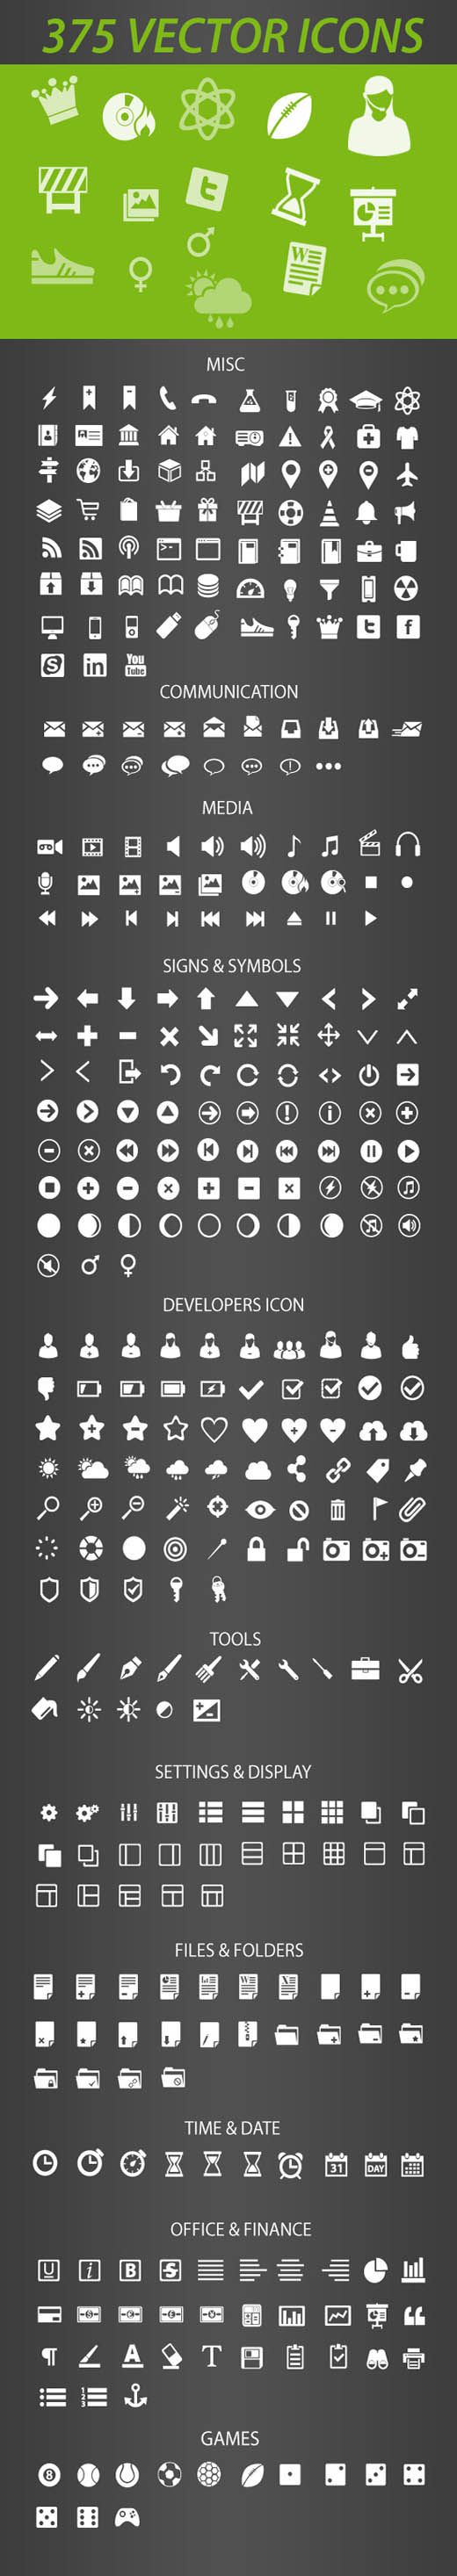 Free Icon Pack 20 Retina Display Ready Icons   Free Vector Site ...